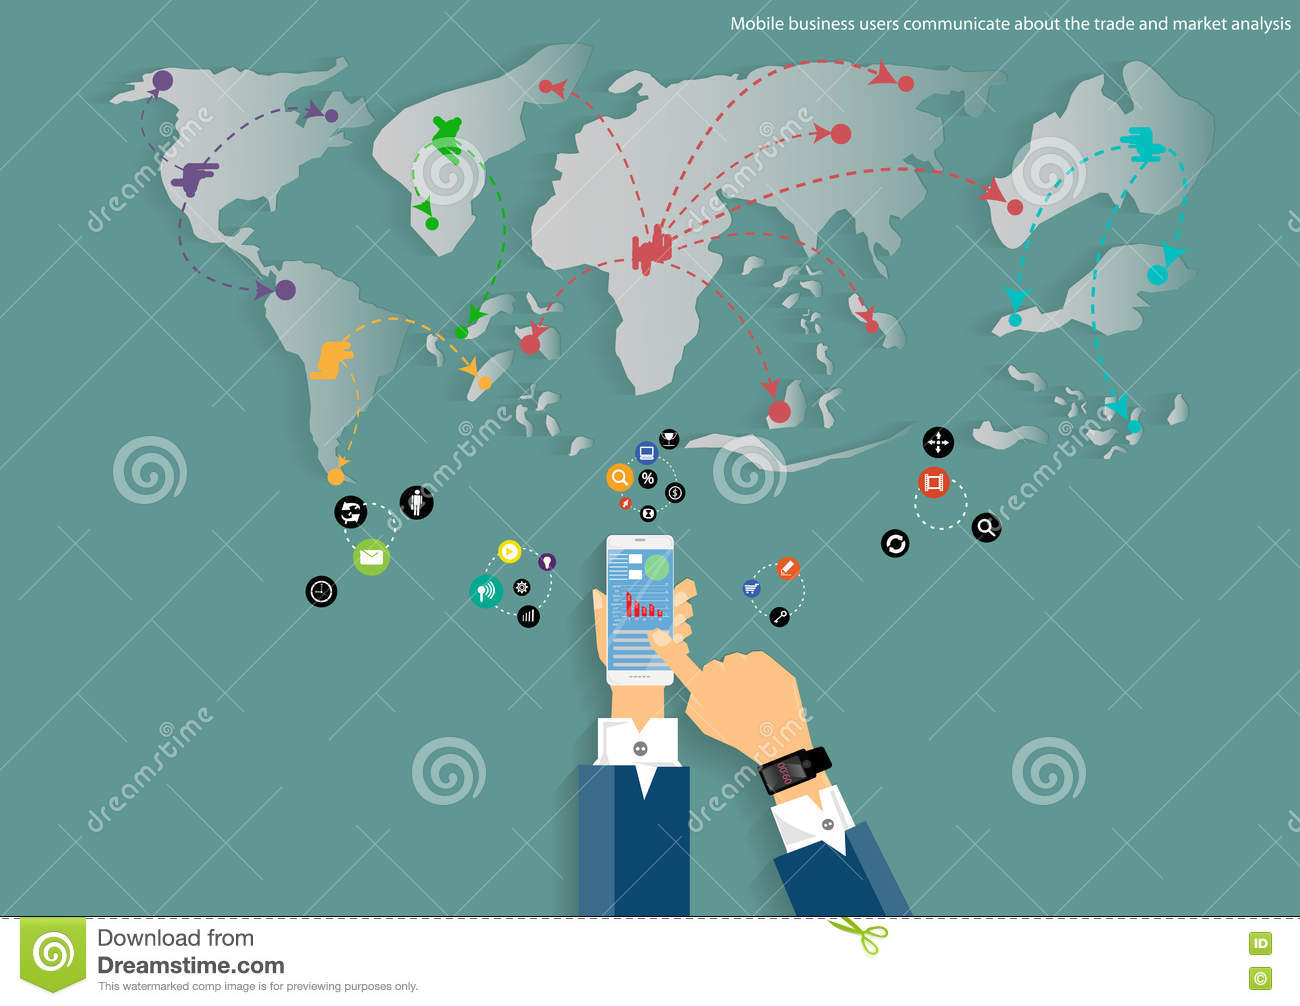 Vector mobile and travel the world map of business communication download comp gumiabroncs Images